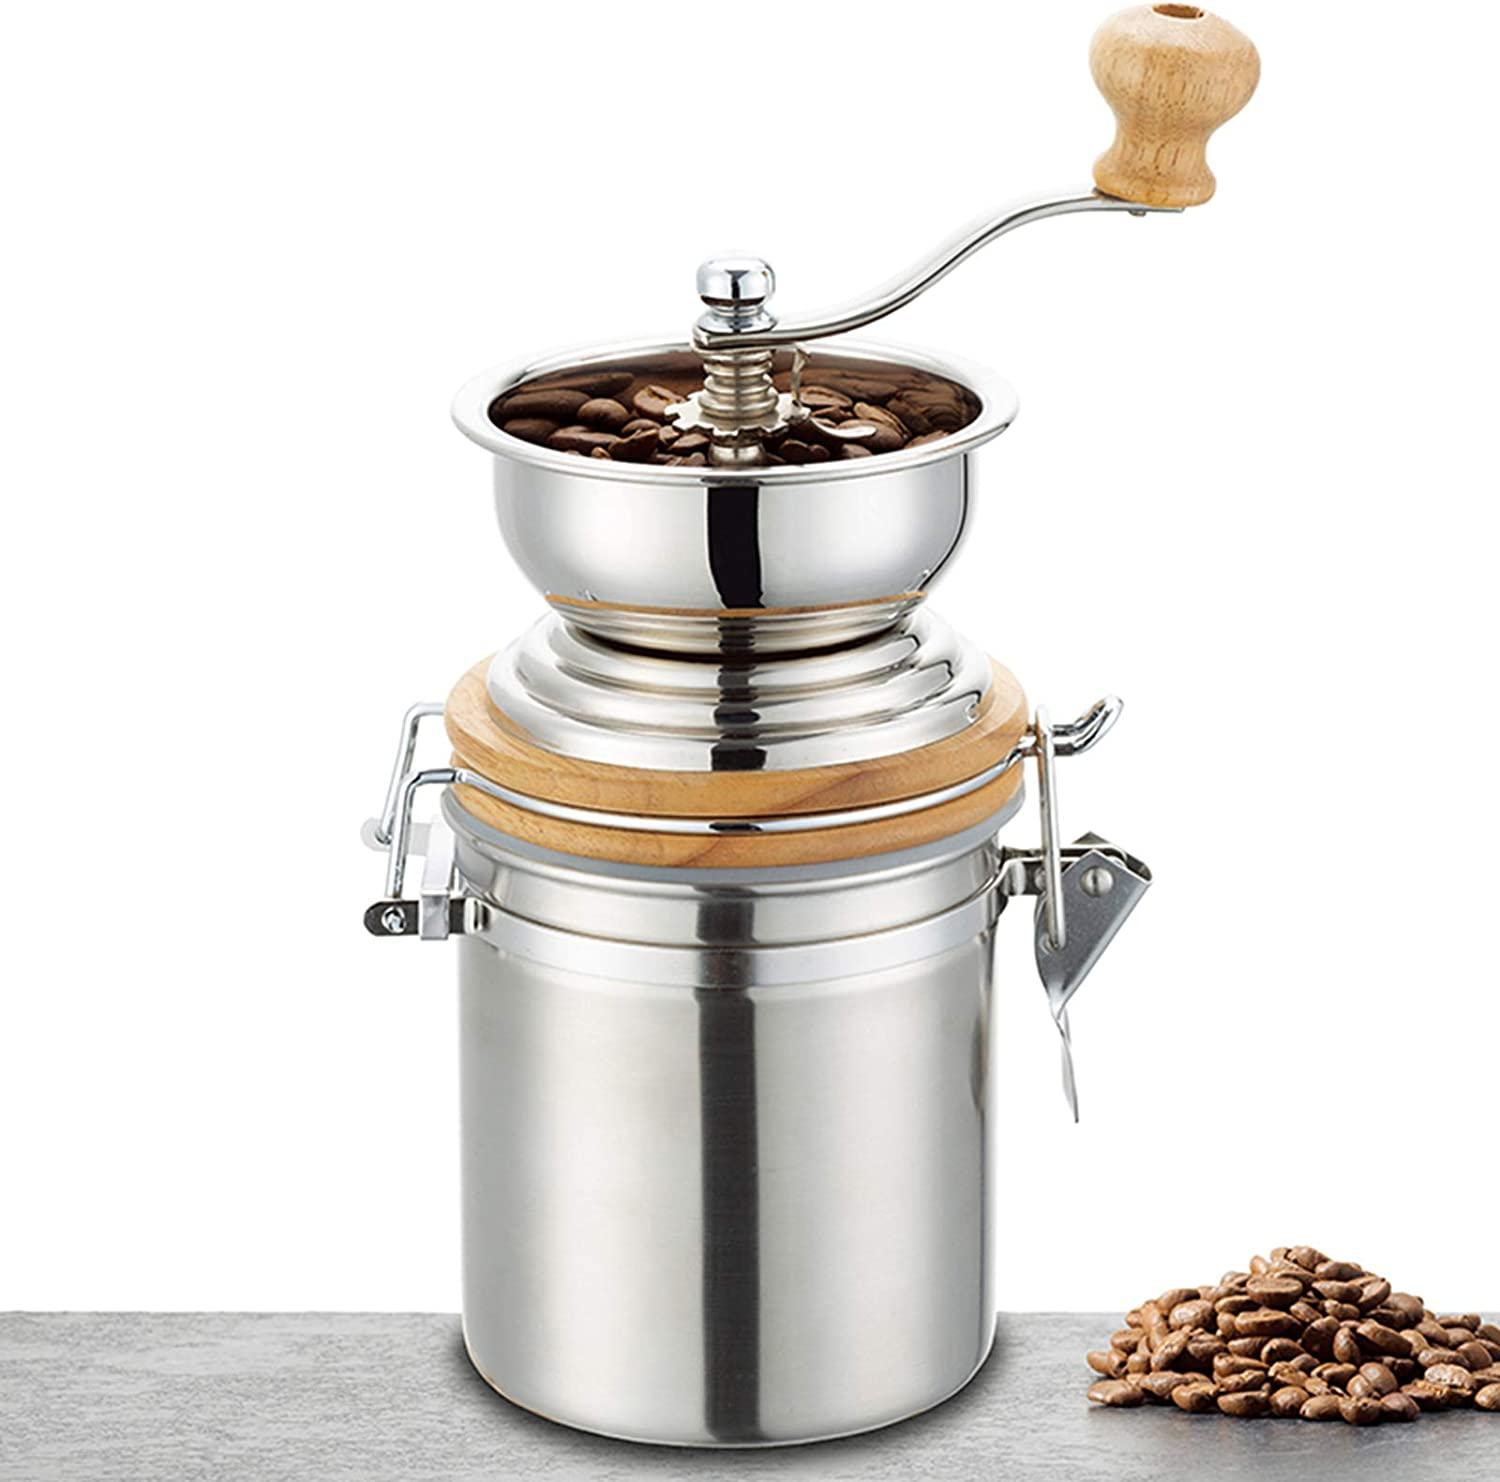 shipfree Easyworkz Manual Max 58% OFF Coffee Grinder Canister Adjustabl with Airtight